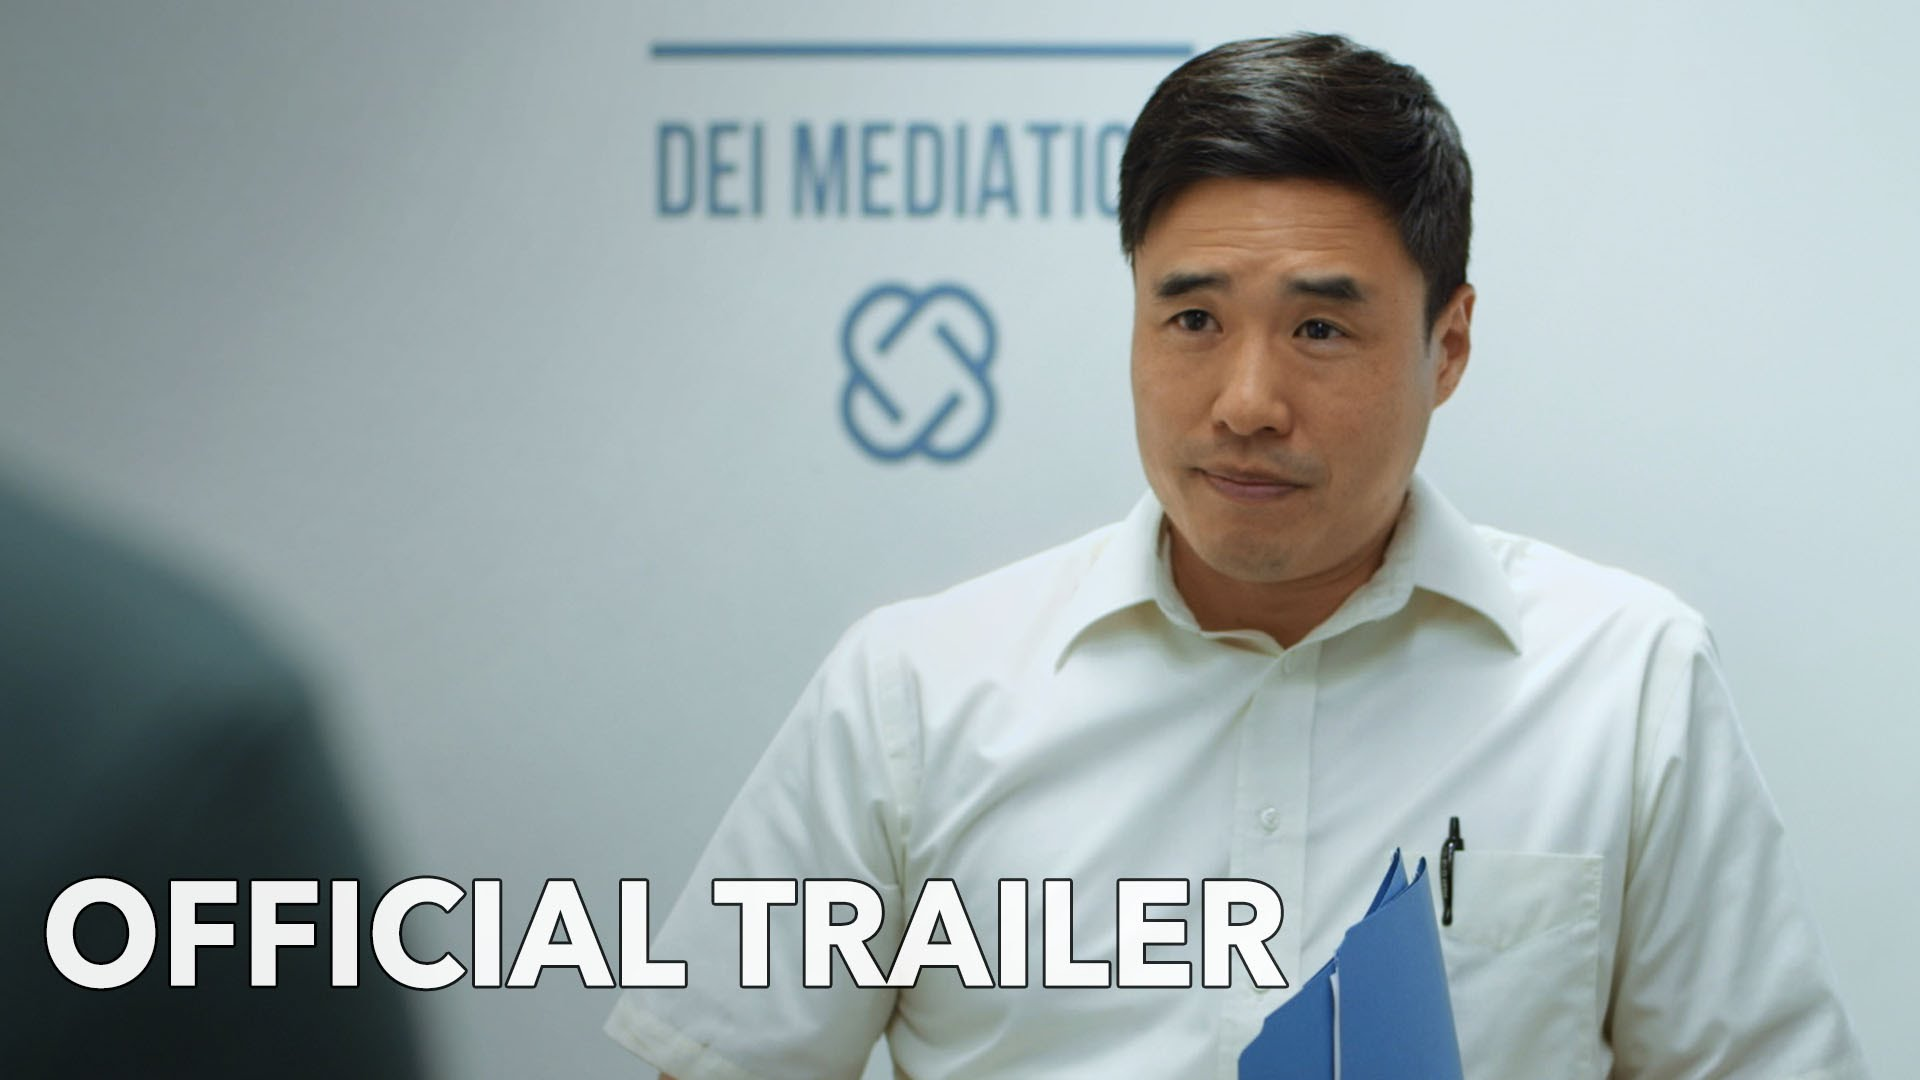 Everything Before Us - Official Trailer #1 - Wong Fu Movie